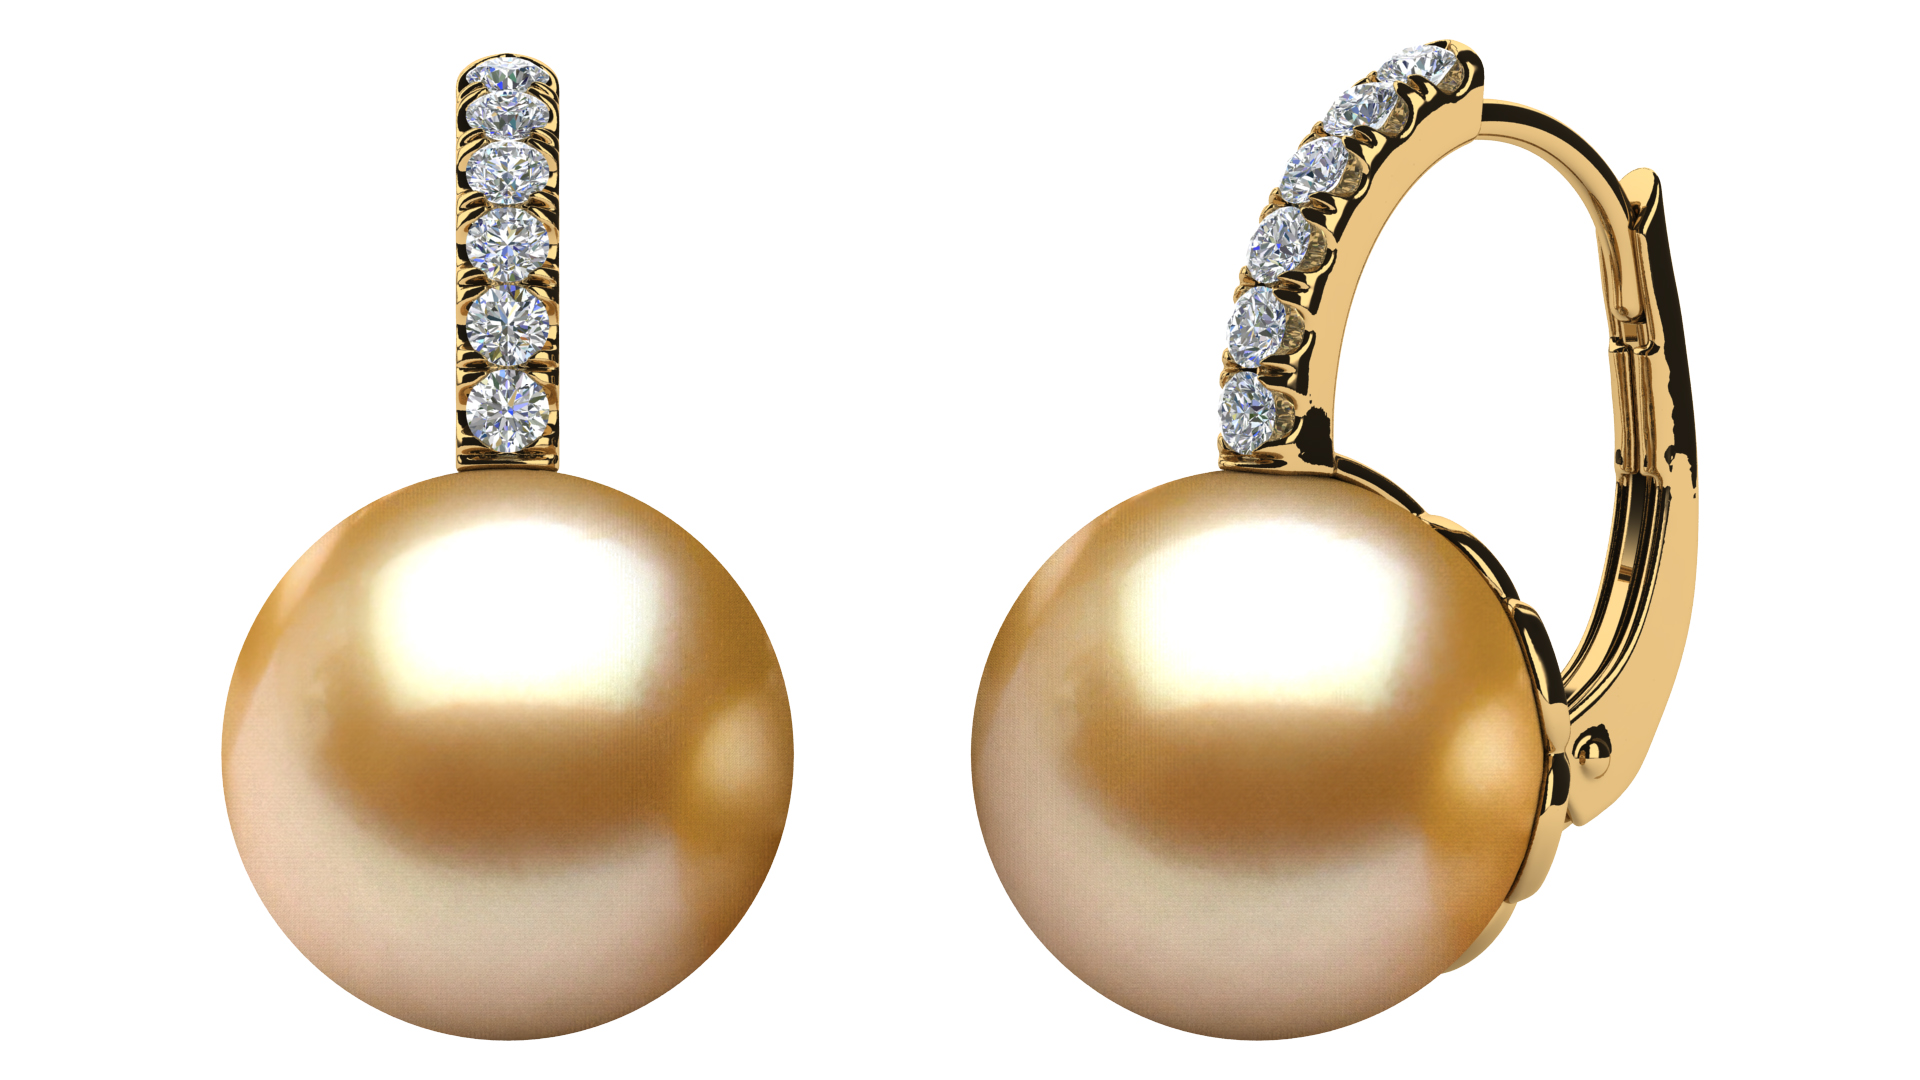 pearl-diamond-lever-back-earring-11mm-.43-inch-wide-.74-inch-high.jpg